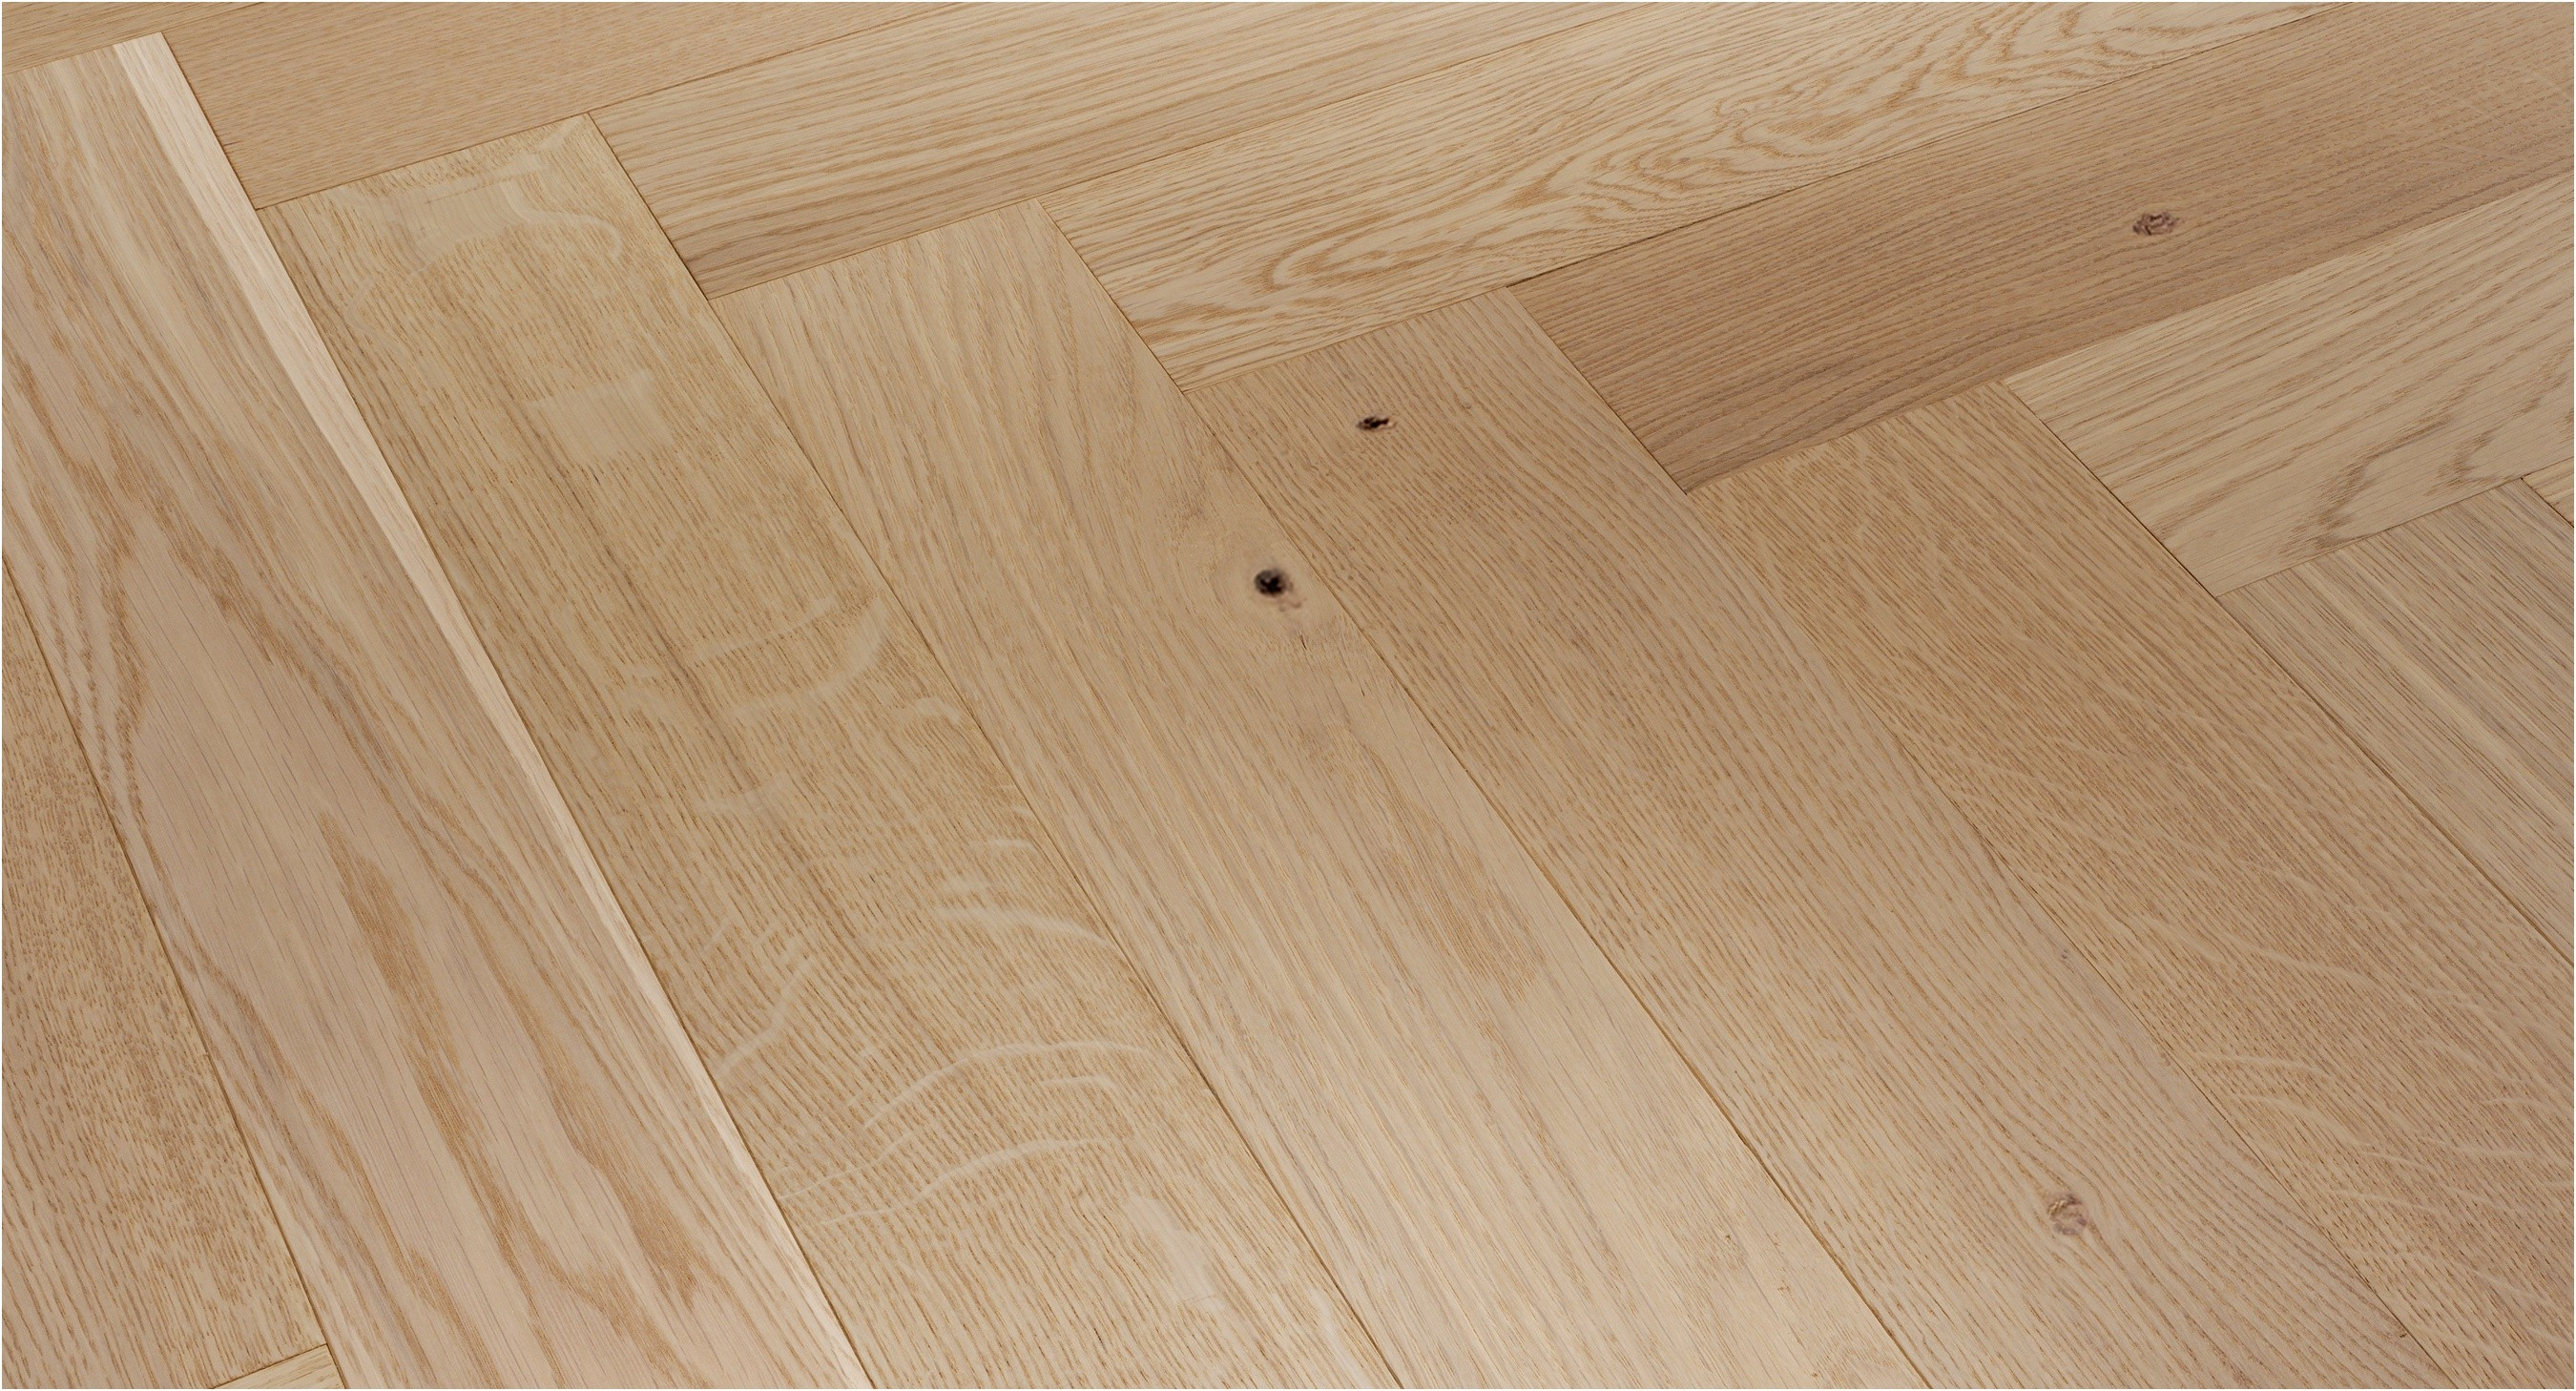 best cleaner for hand scraped hardwood floors of 19 awesome hardwood flooring for sale photograph dizpos com throughout hardwood flooring for sale awesome flooring sale near me stock 0d grace place barnegat nj photos